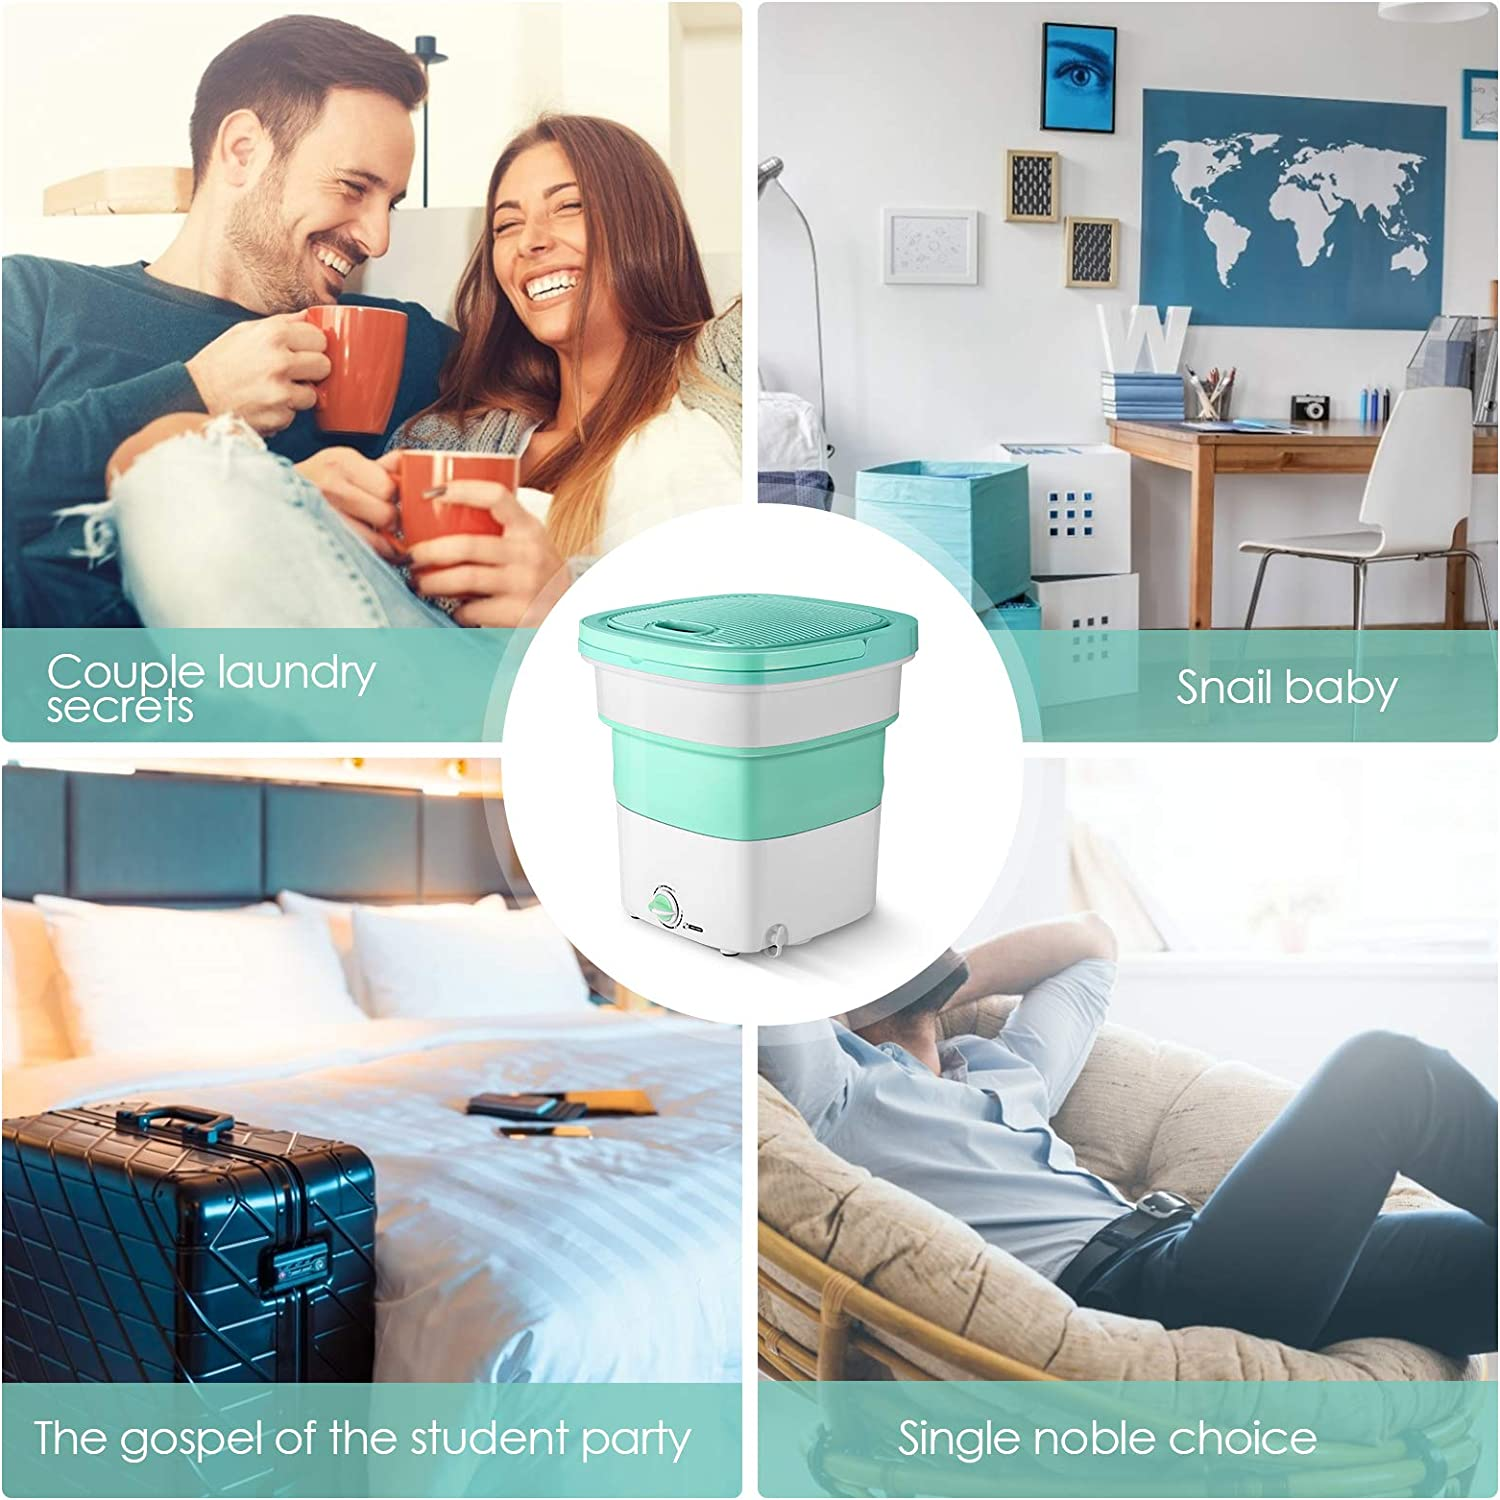 Camping Mini Compact Washer for Apartment Dorm SEAAN Portable Foldable Washing Machine,Electric Laundry Machine Travelling